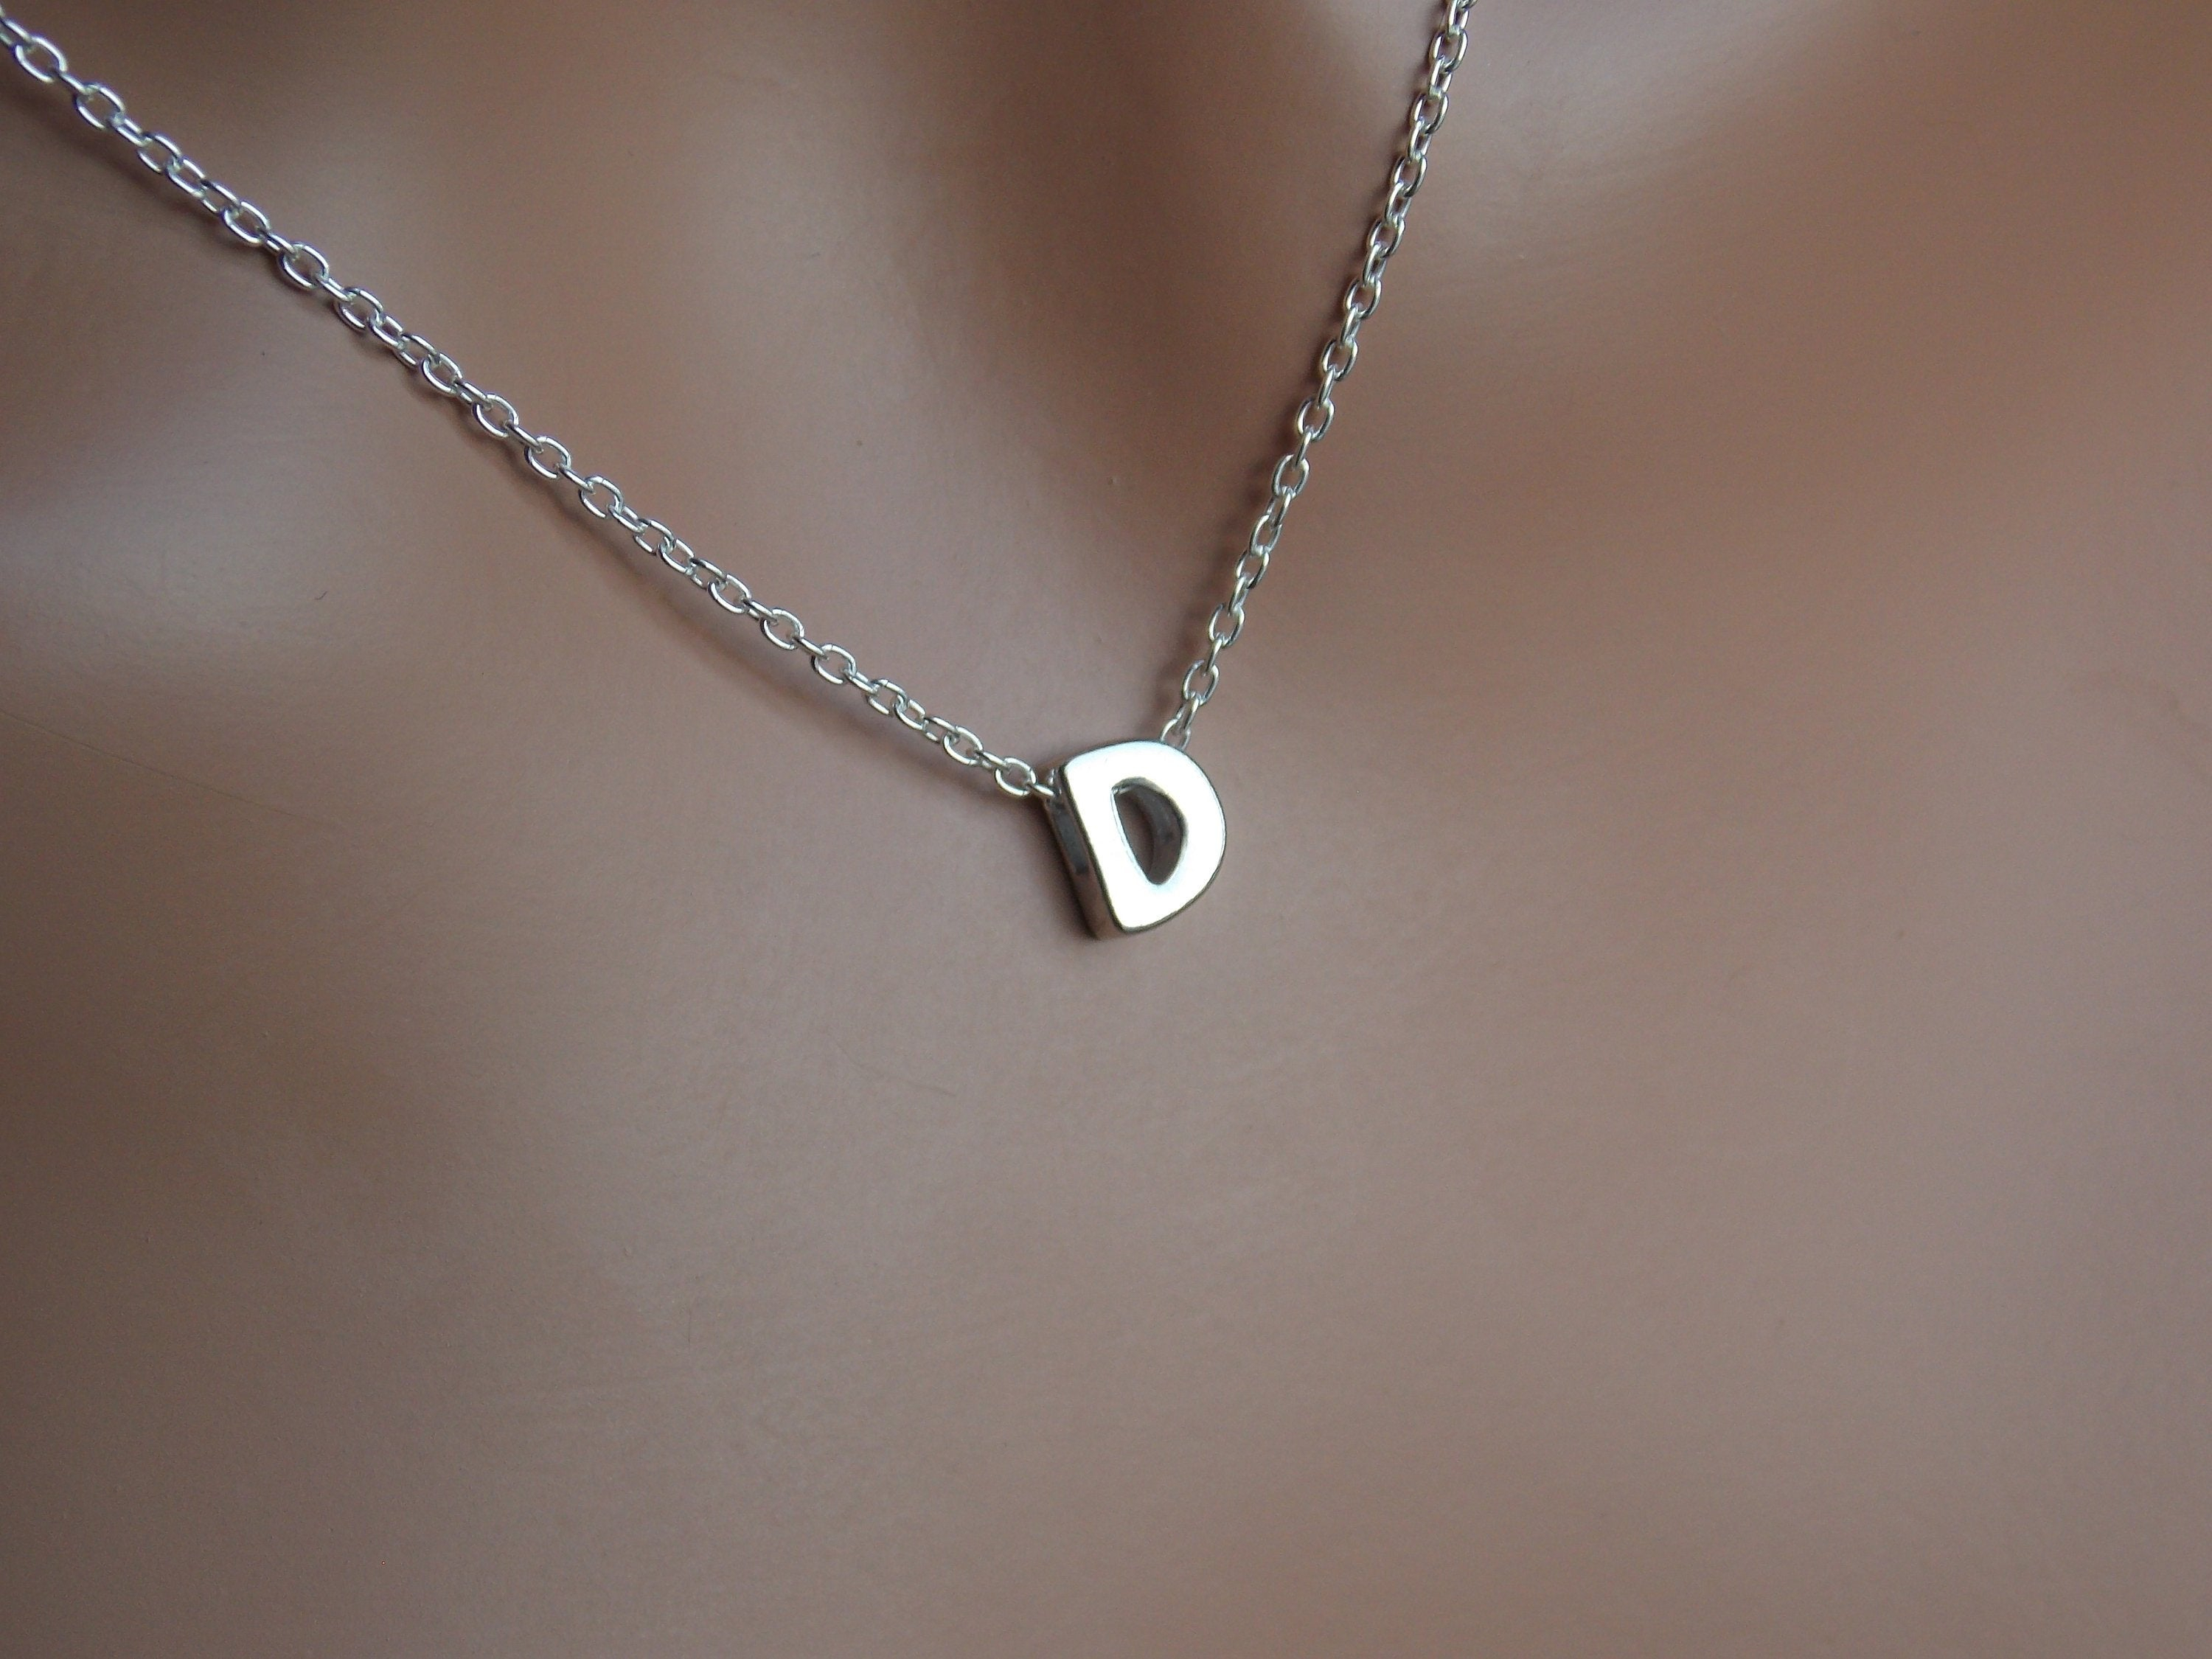 Initial D Necklace, Letter D, Letter D Necklace, Monogram D, Letter D Pendant, D Charm, D Jewelry, Alphabet, Sterling Silver D, Stampsink Regarding 2020 Letter F Alphabet Locket Element Necklaces (View 9 of 25)